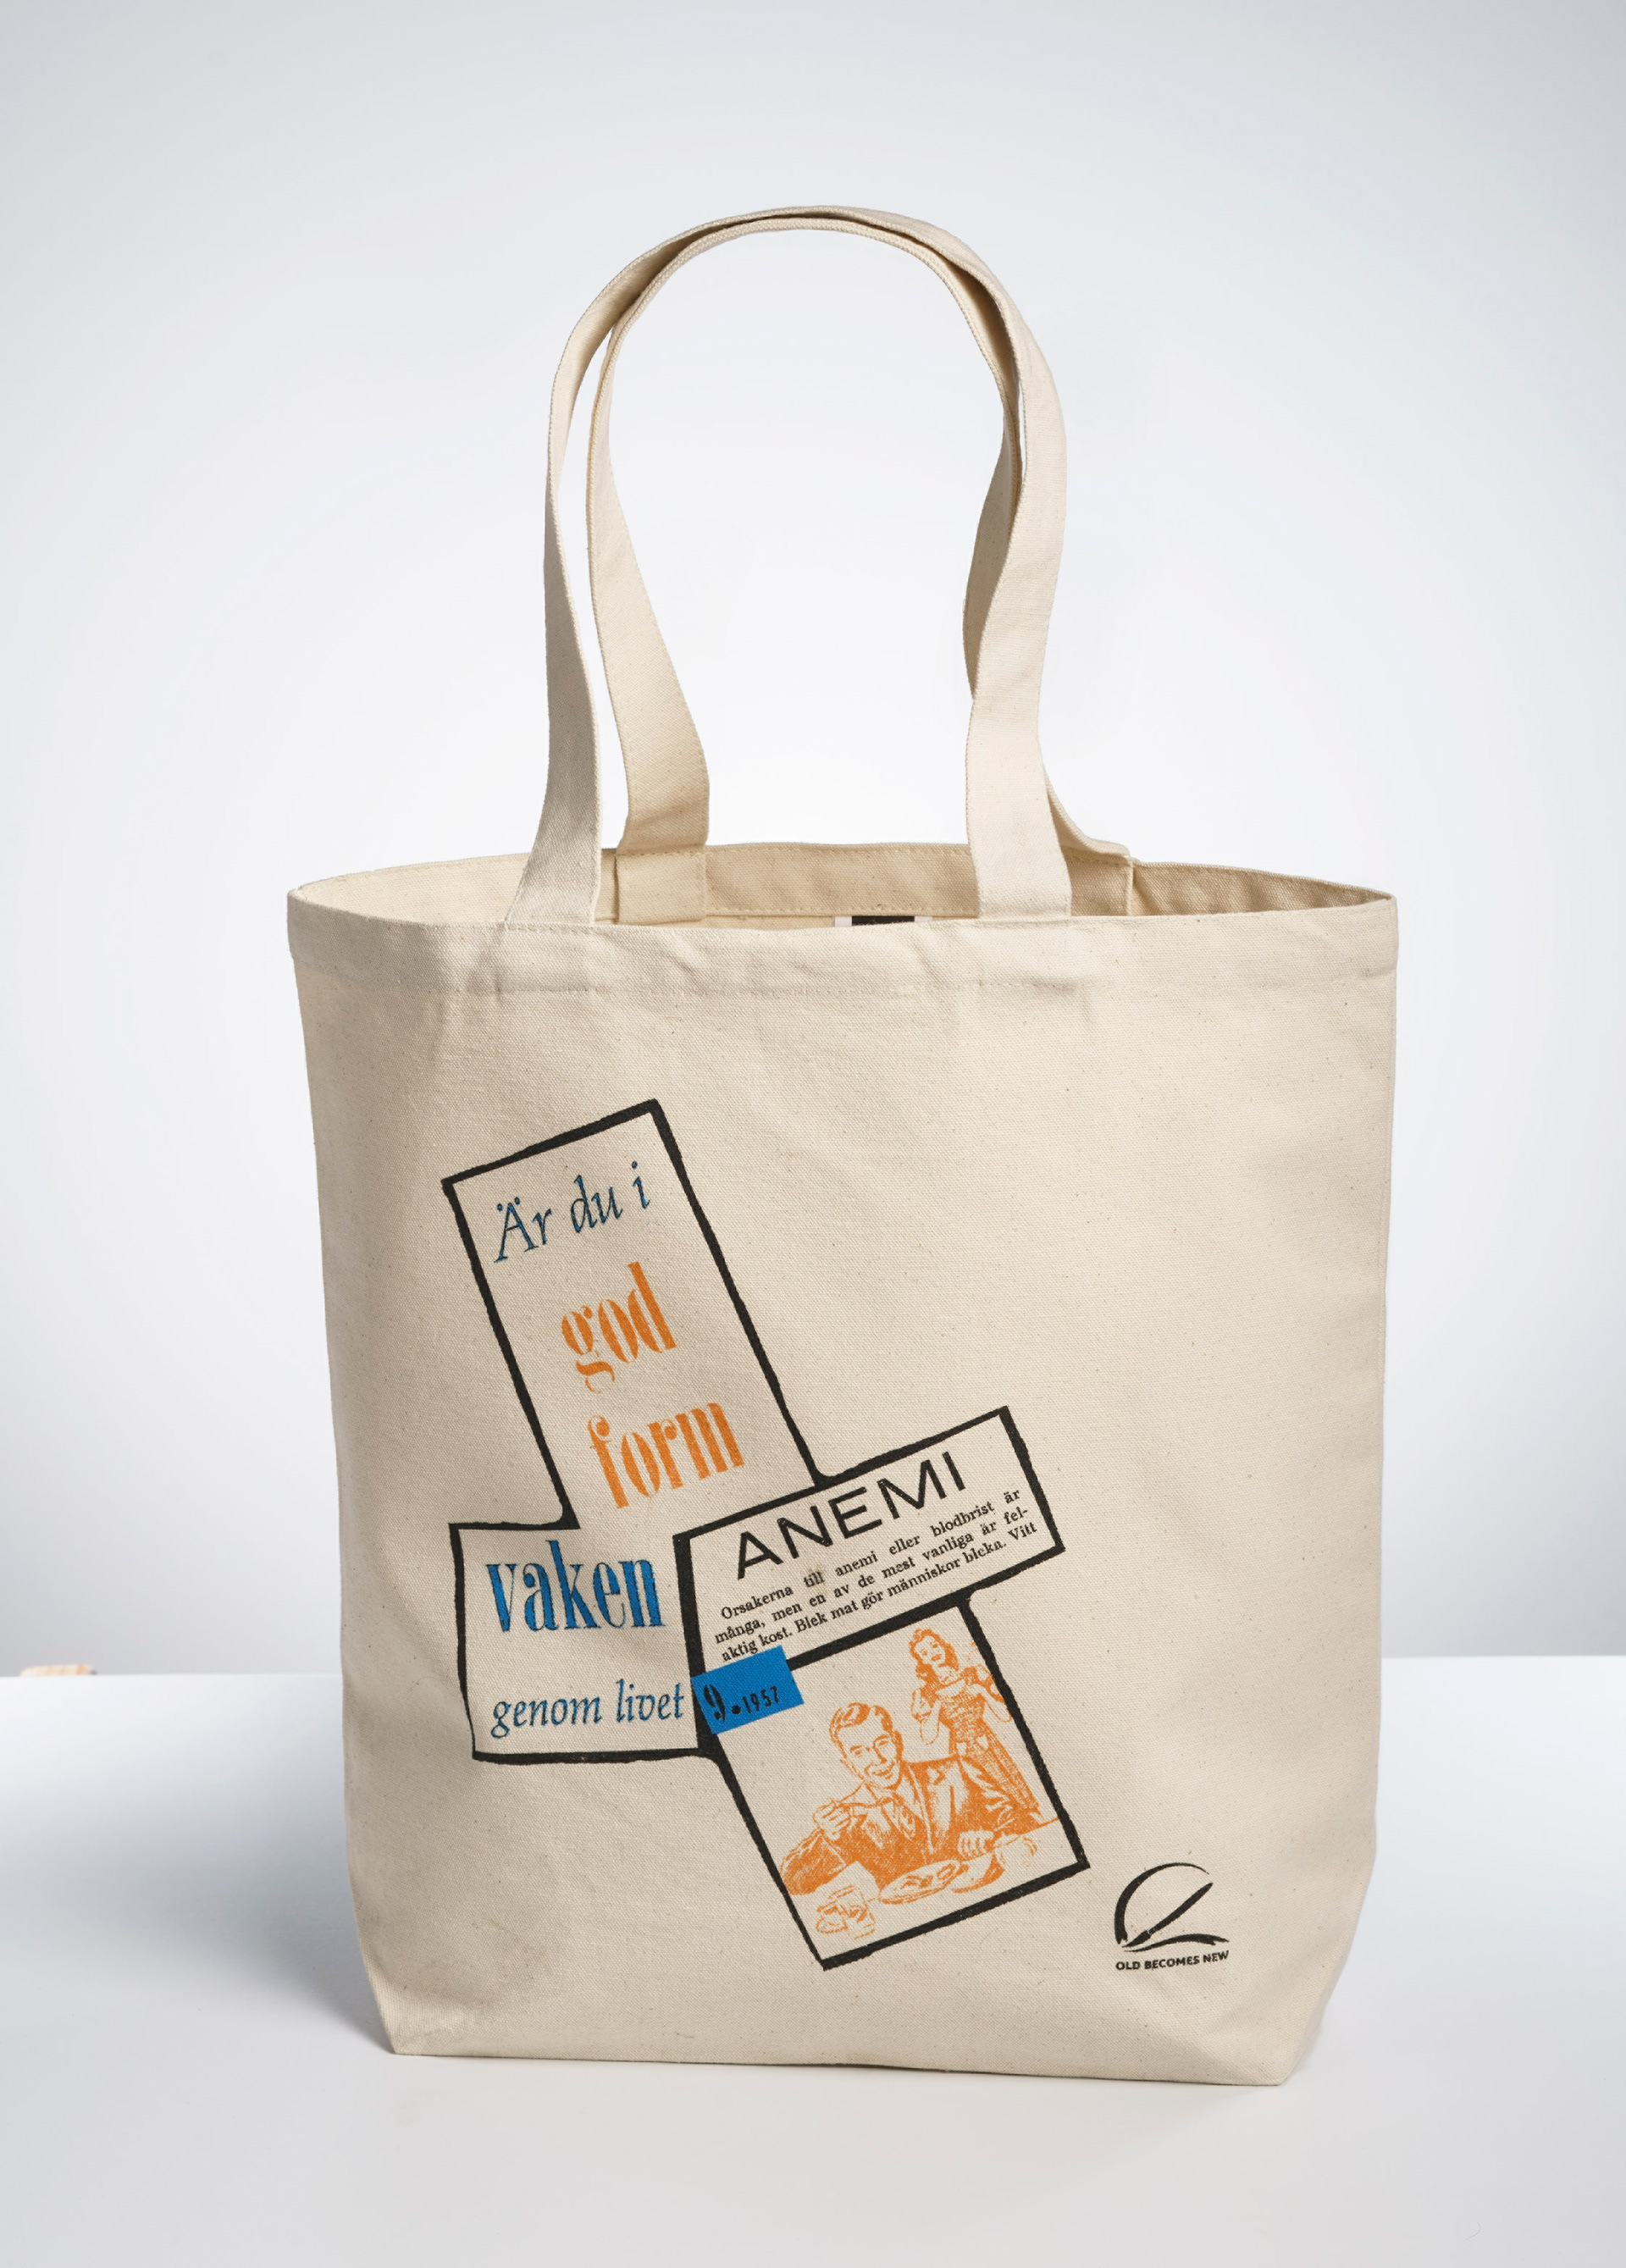 Design Of Fabric Tote Bags For The Brand Old Becomes New Check Out Their Awesome Products At Www Oldbnew